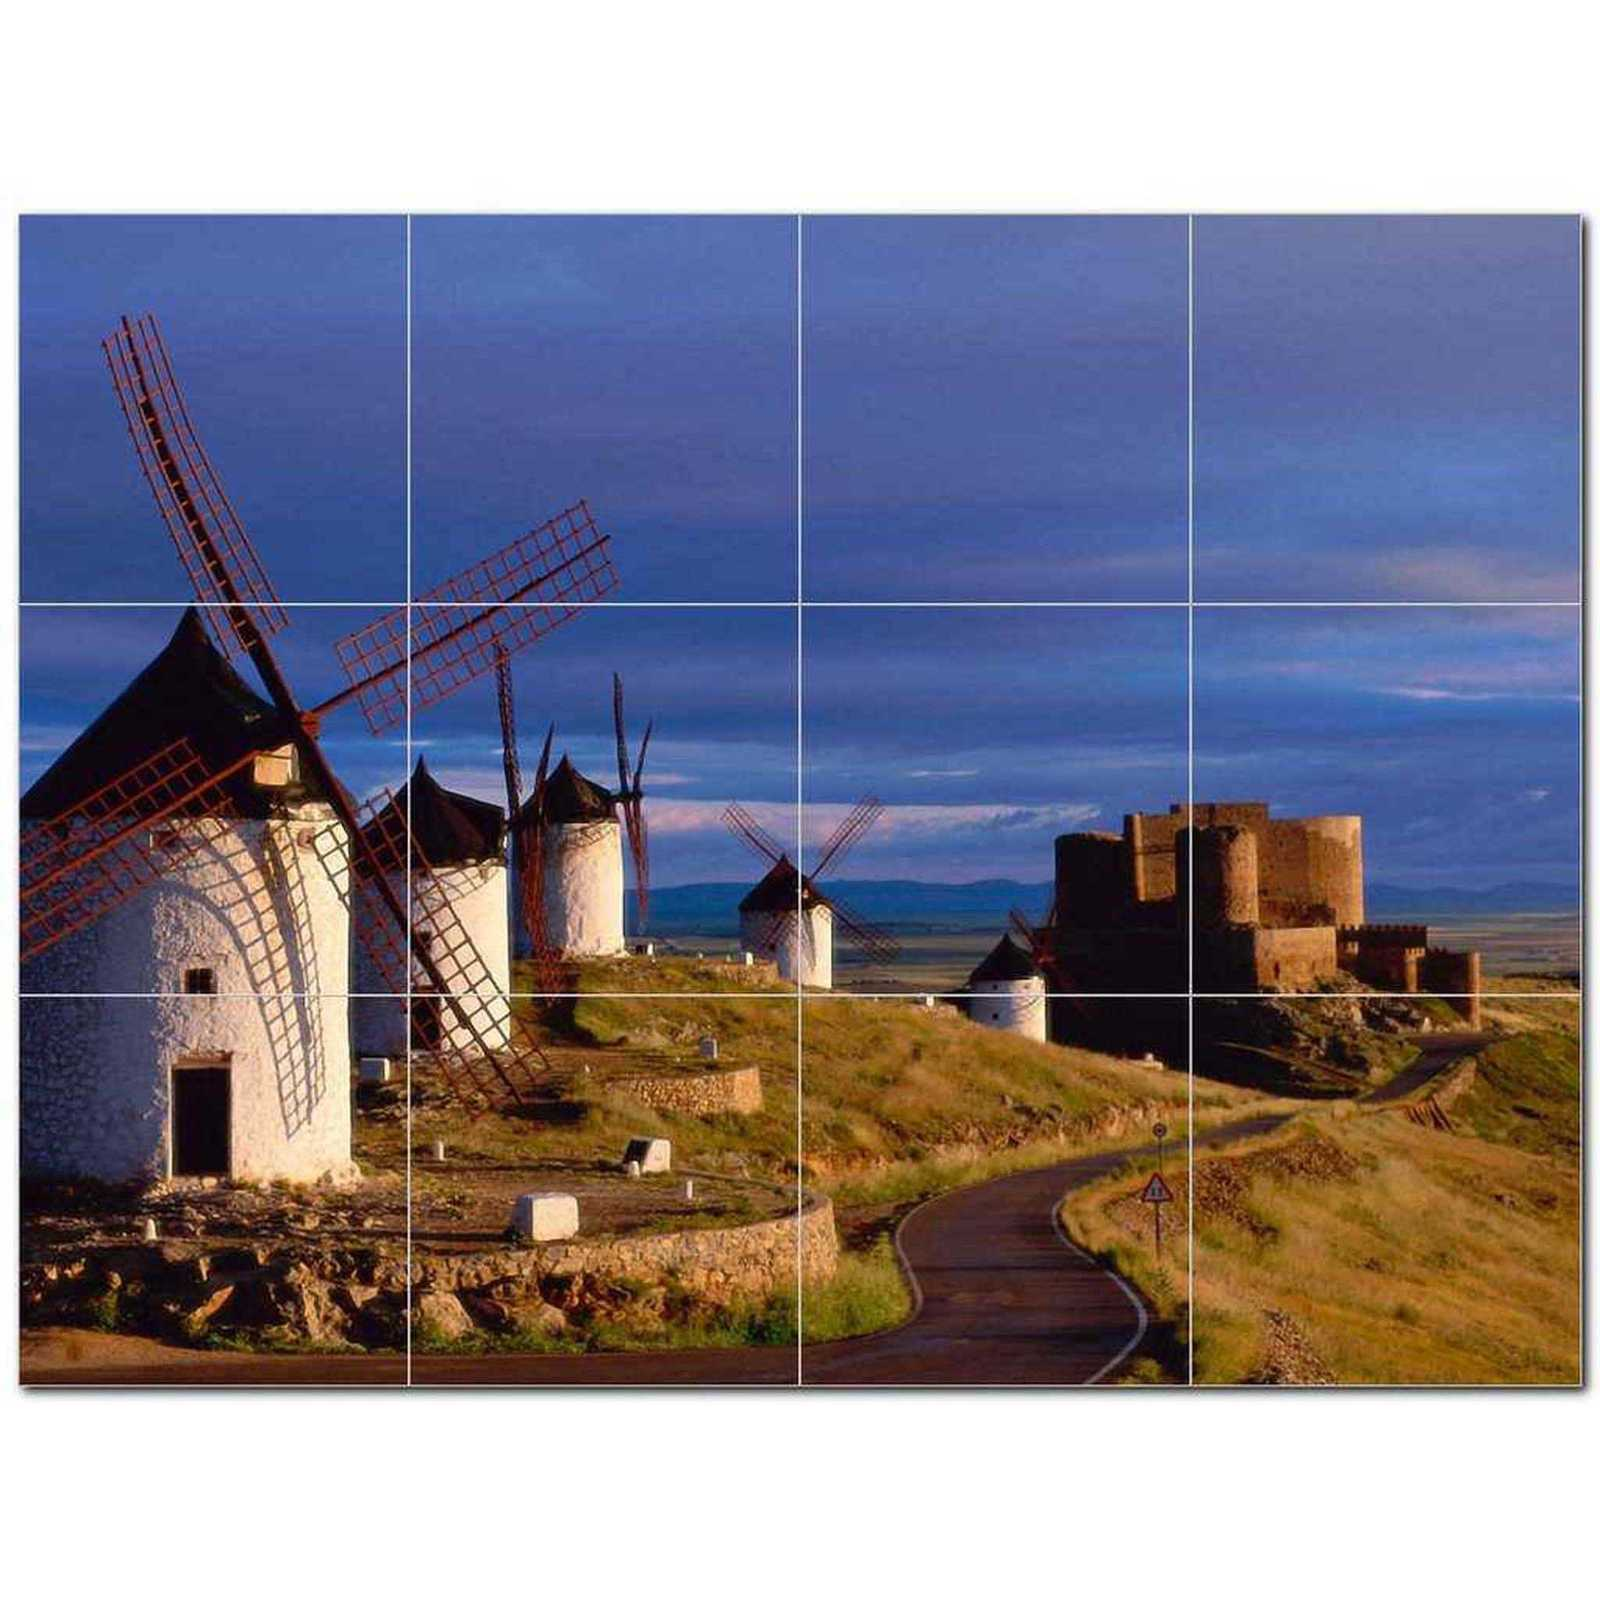 Primary image for Windmill Photo Ceramic Tile Mural Kitchen Backsplash Bathroom Shower BAZ406332